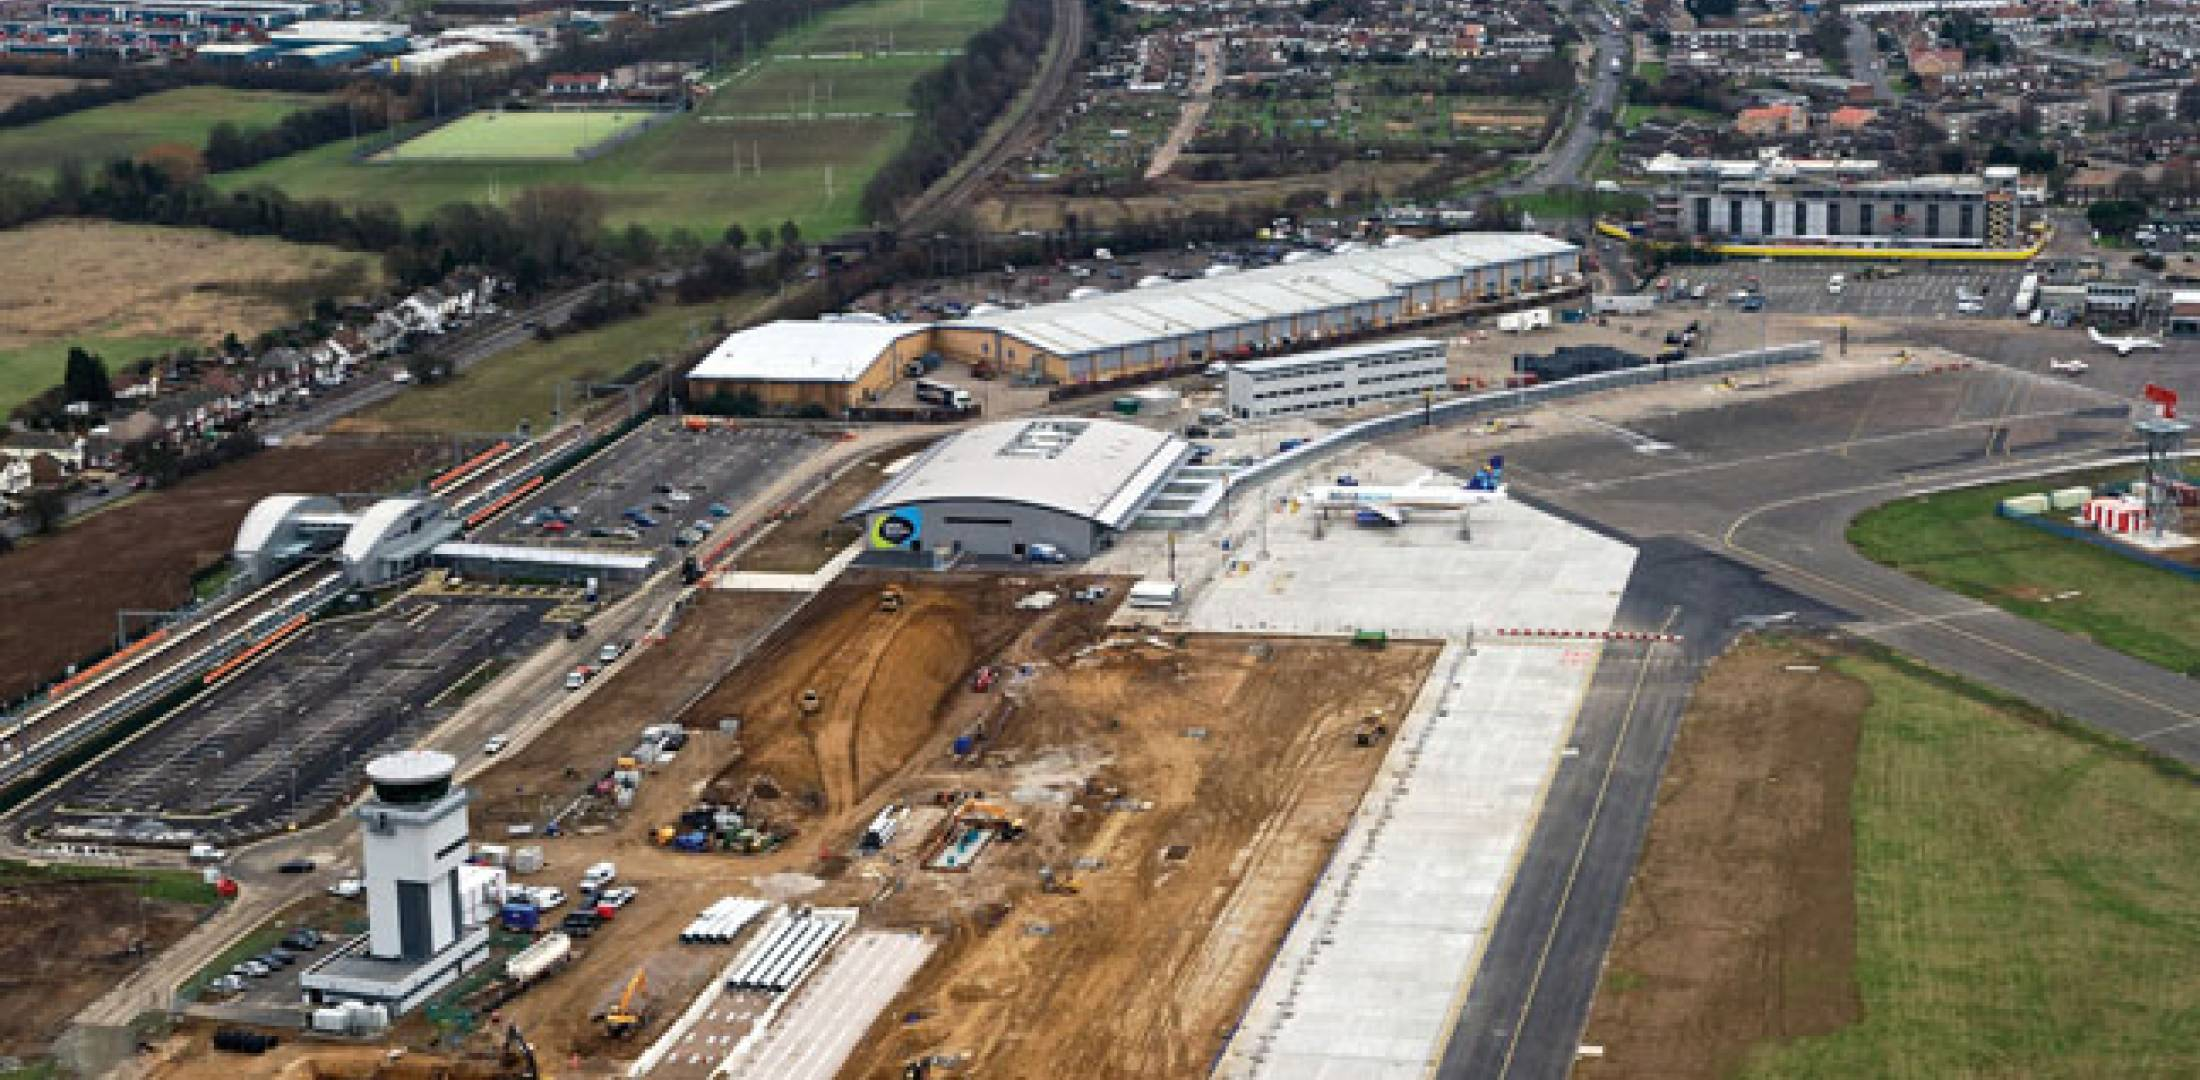 London Southend Airport recently completed infrastructure upgrades and stands ready to accommodate the influx of traffic to the London area for the Olympics.